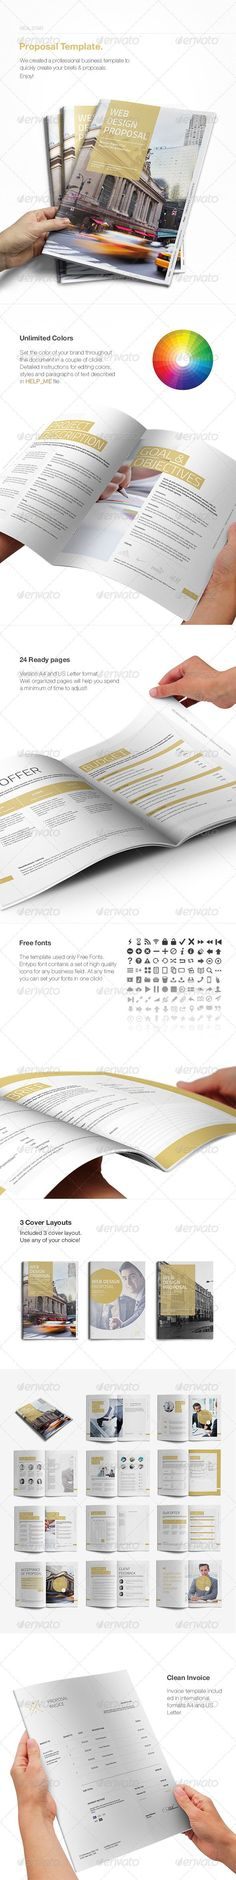 Commercial Proposal Format Pleasing Commercial Proposal Template #09  Commercial Proposal  Pinterest .